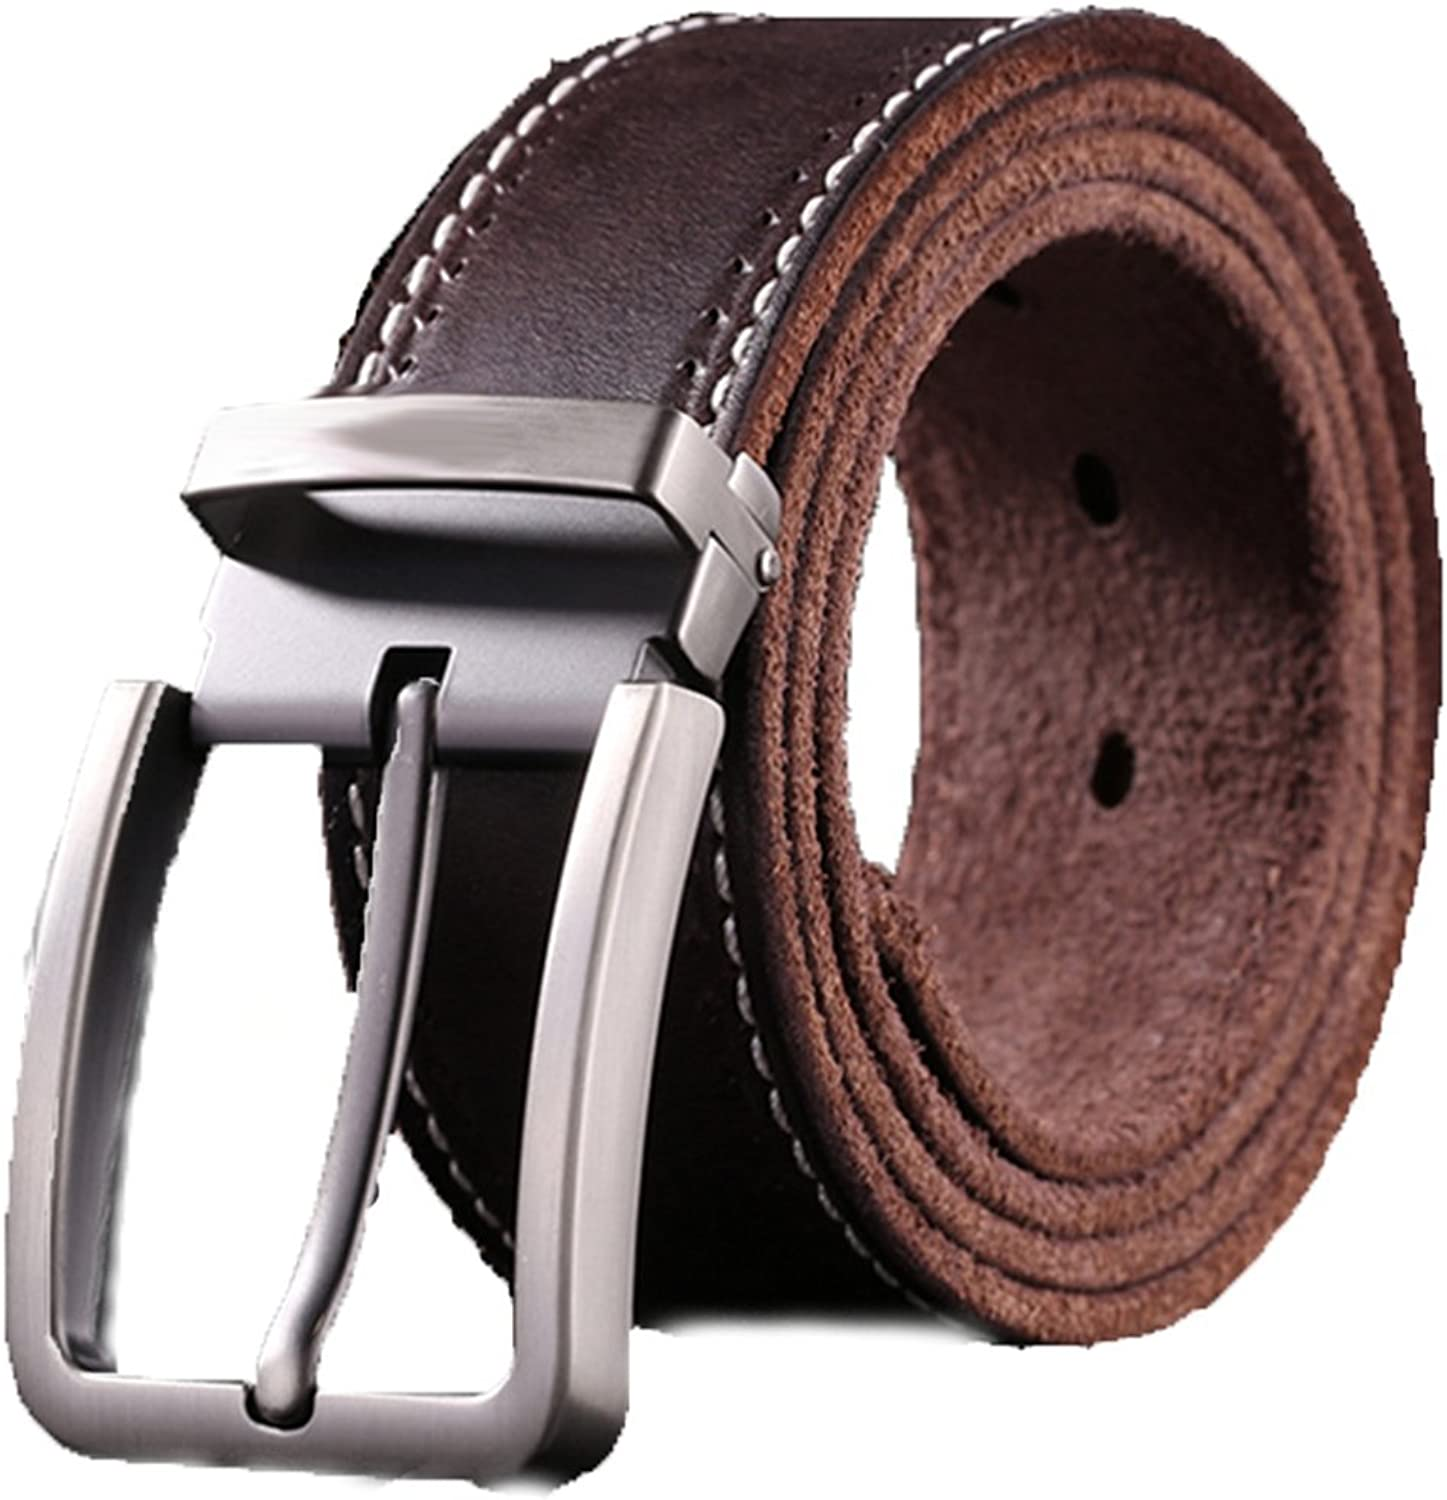 Nclon Men's belt,Casual style Pin buckle Leather Multipack Brown Black Belt-Brown2 125cm(49inch)